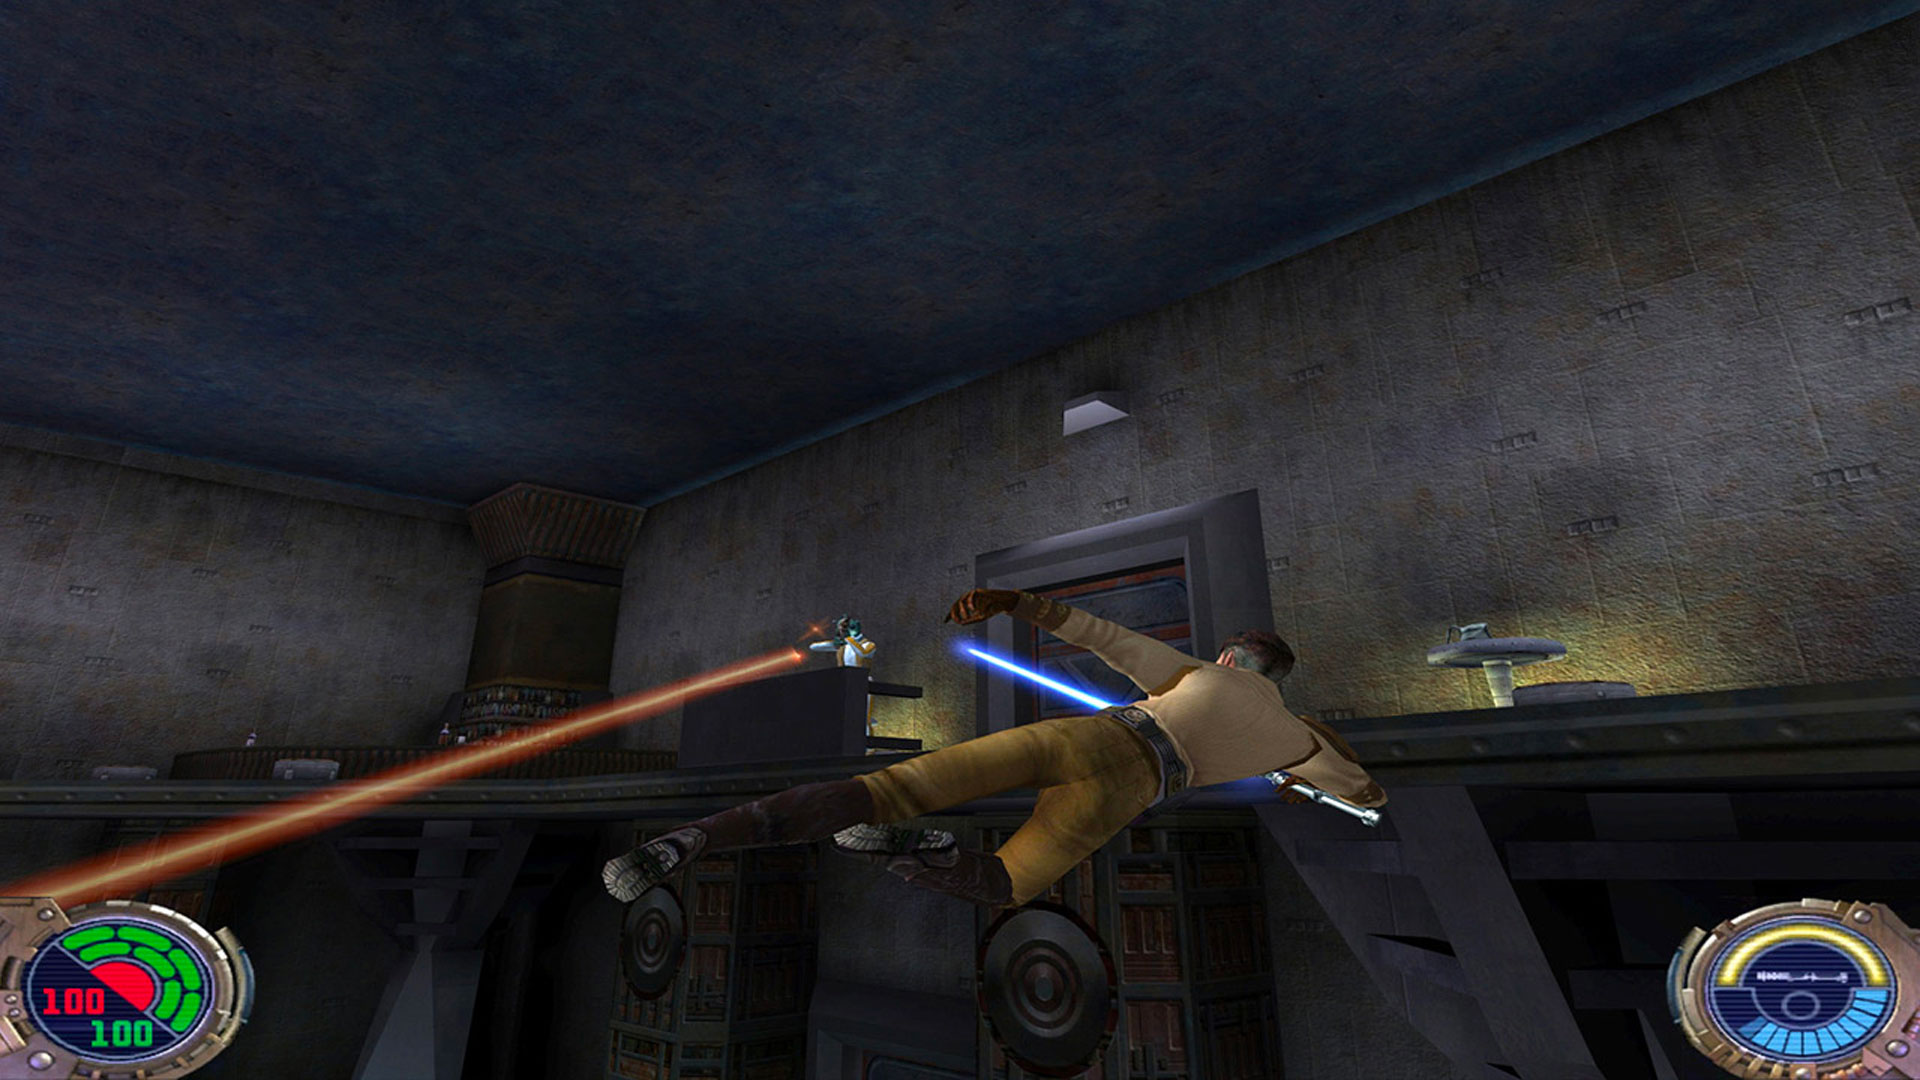 Star Wars Jedi Knight games to be released on Nintendo